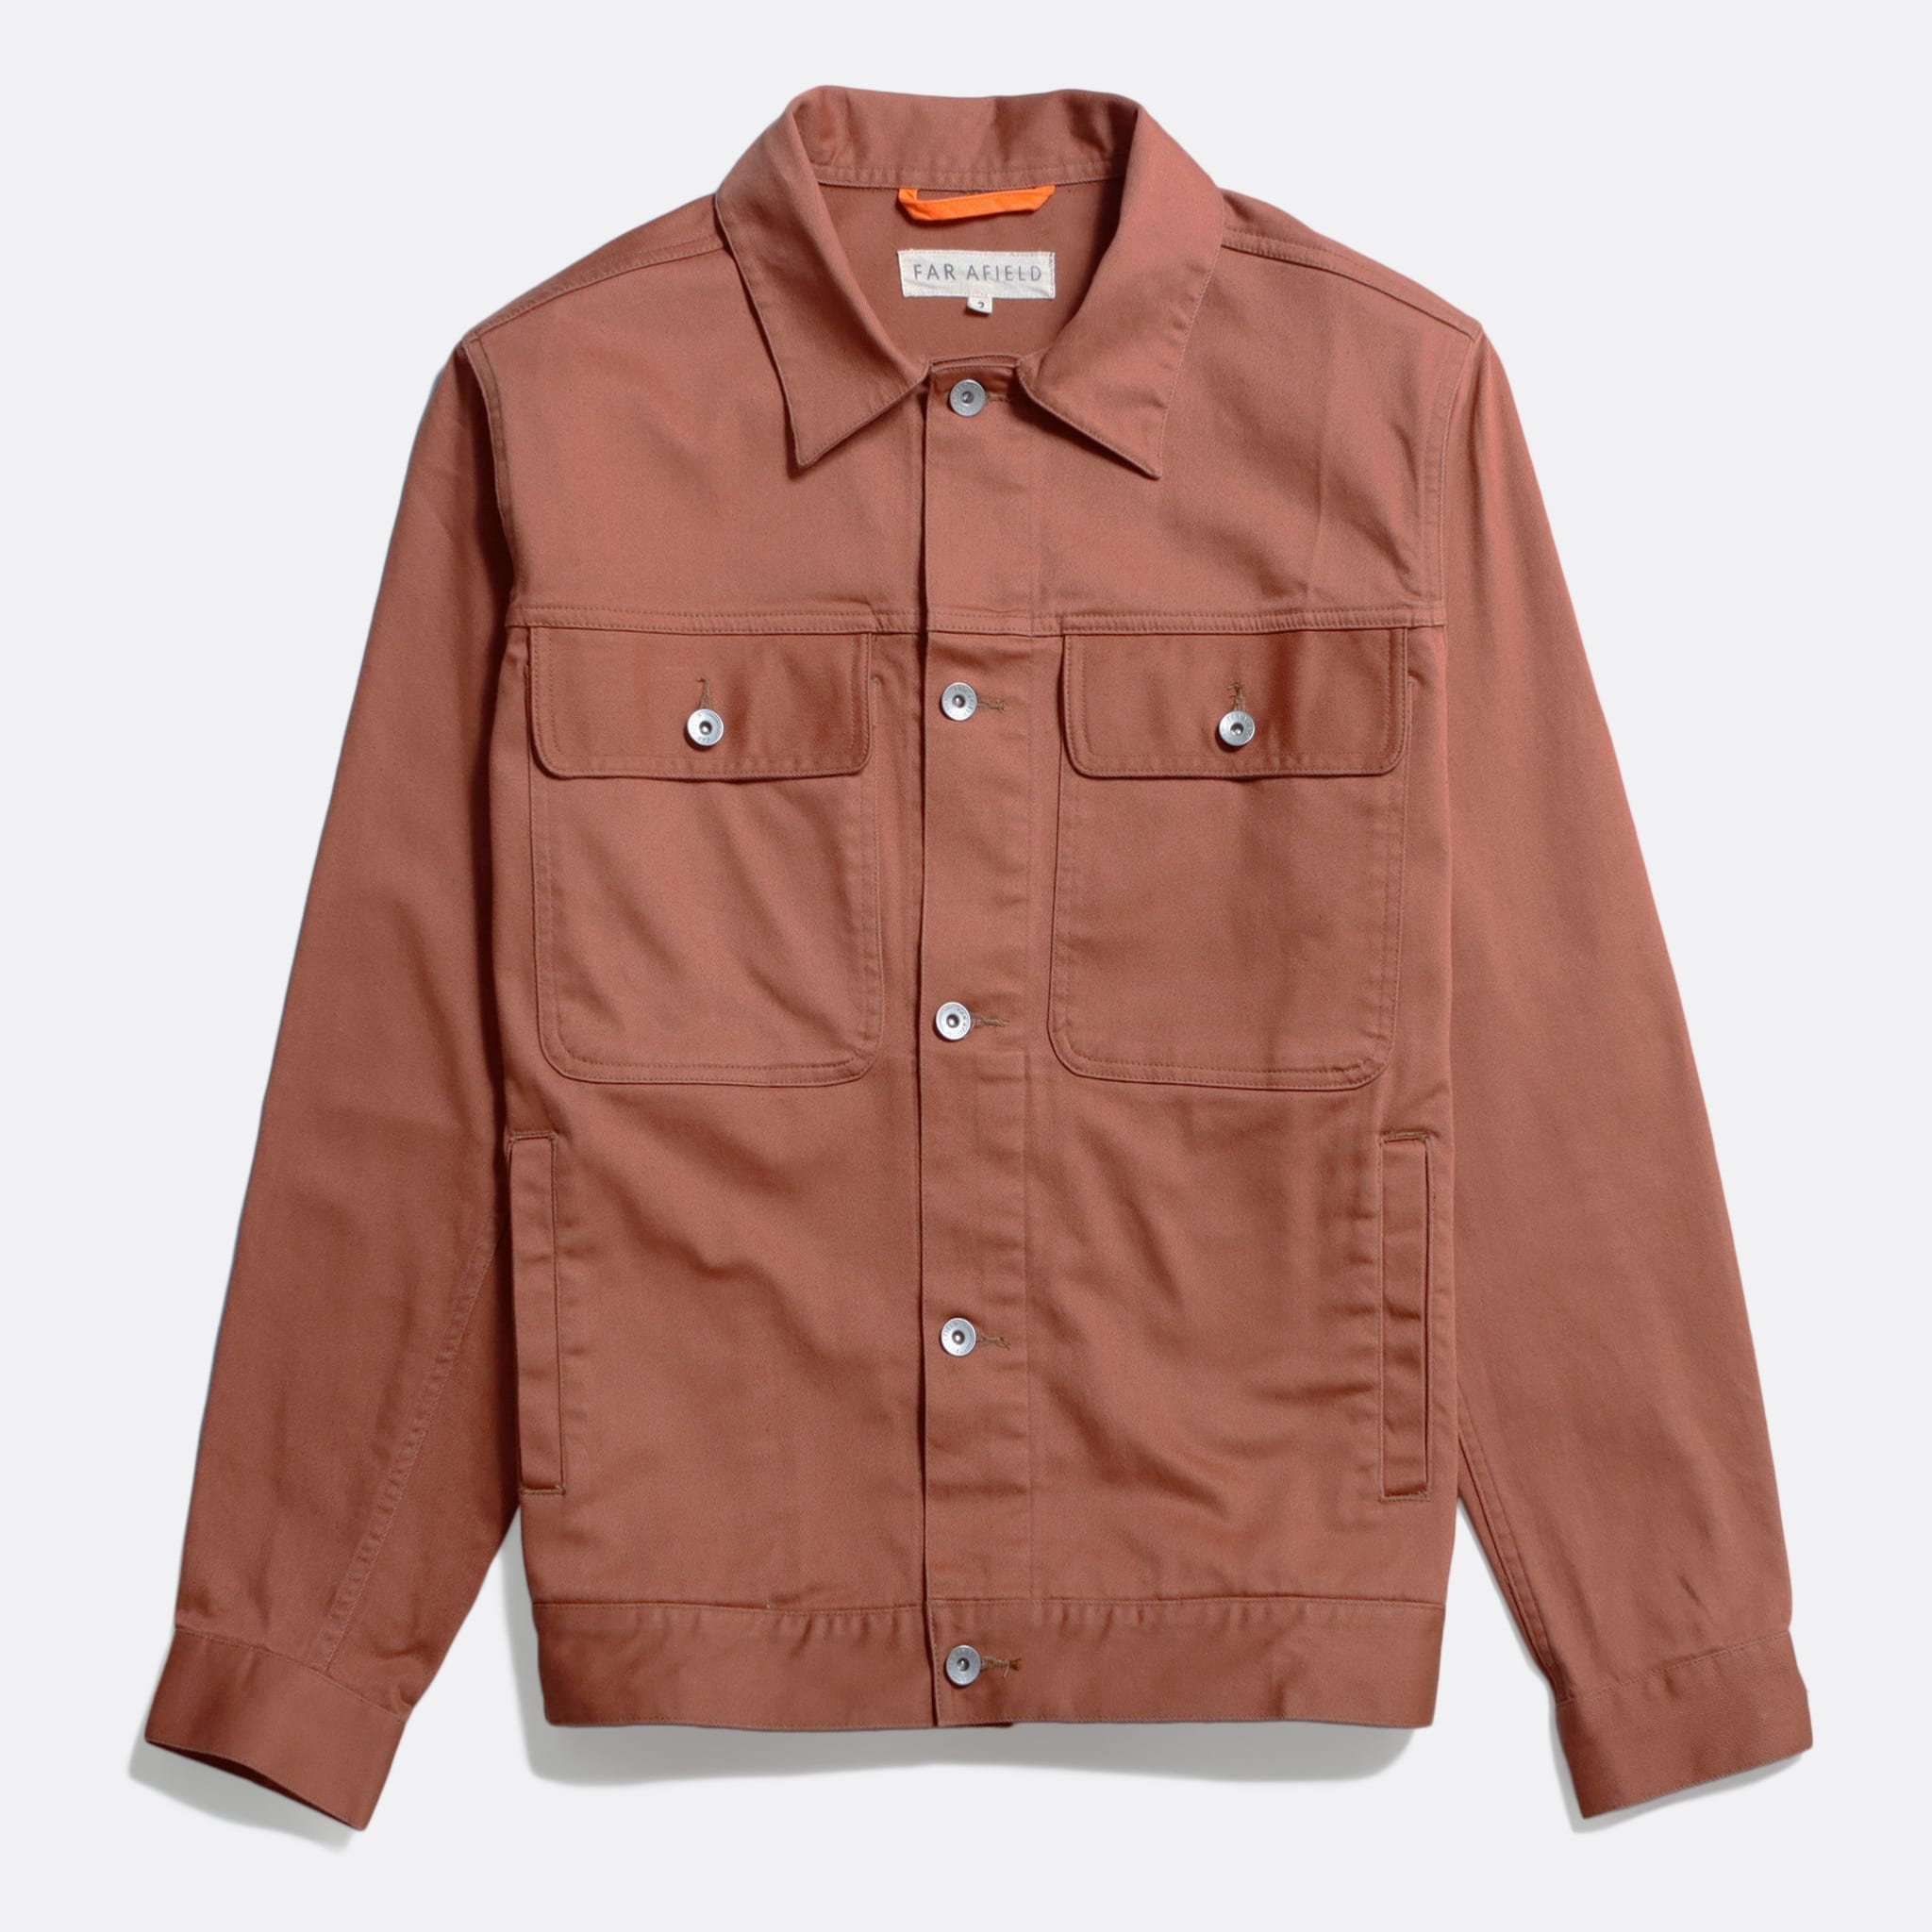 Far Afield Watts Jacket a Thrush Brown Organic Cotton Twill Fabric Lightweight Trucker Classic Work